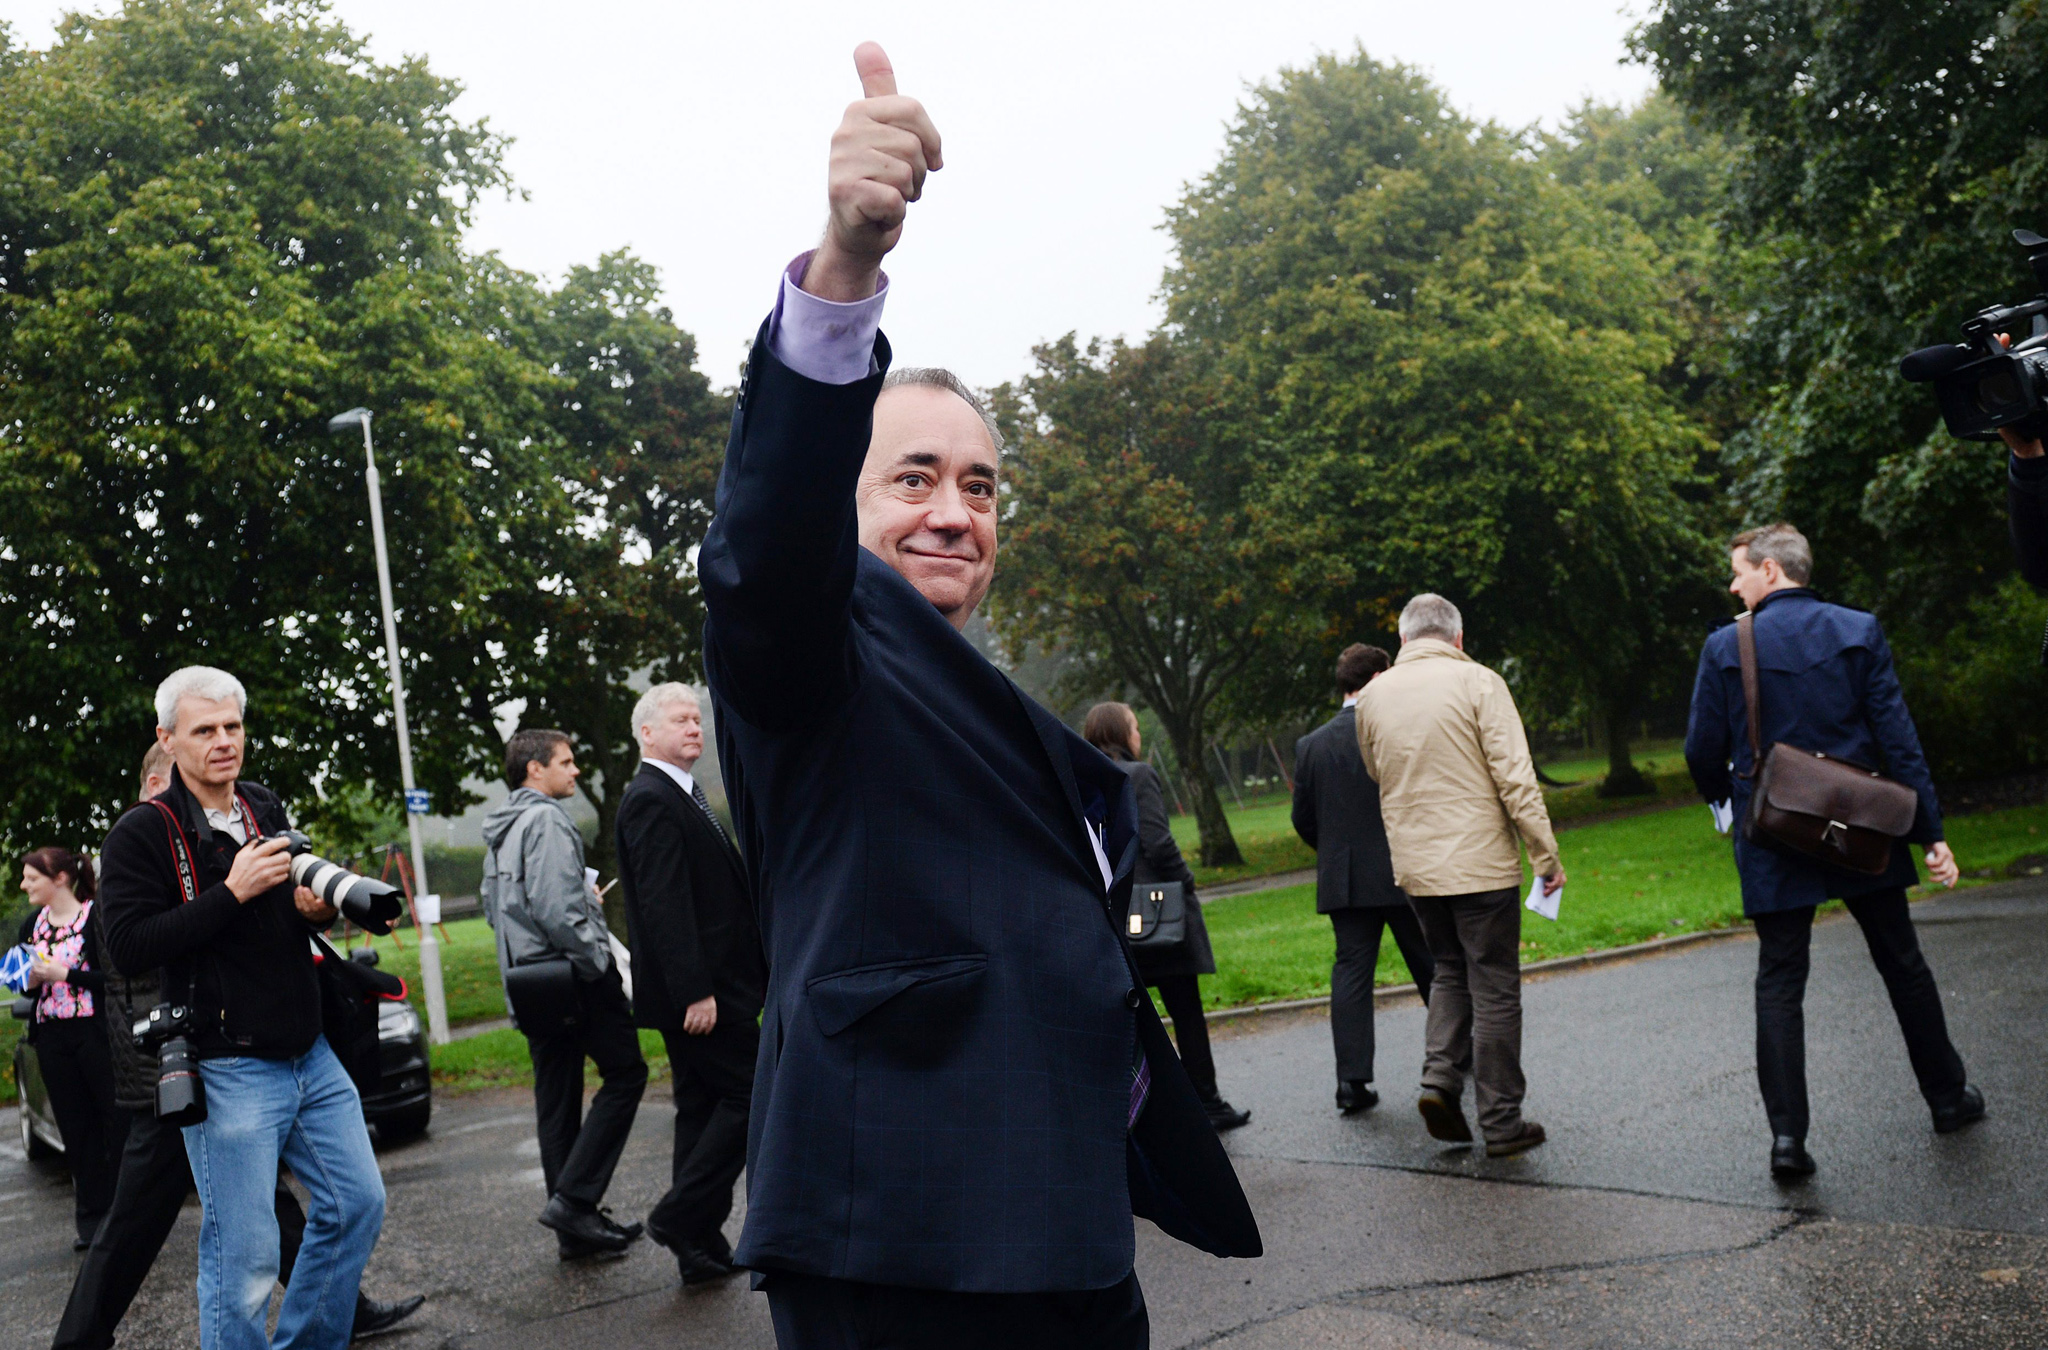 Scots turn out to vote in Scottish referendum...epa04405147 Scottish First Minister Alex Salmond gives the thumbs up after voting in the Scottish referendum in Aberdeenshire, Scotland, 18 September 2014. Scots are turning out across Scotland to vote in the Scottish referendum.  Polls opened early in Scotland, with voters set to decide whether or not to end more than 300 years of union with the rest of the United Kingdom. Almost 4.3 million people have registered to vote across 32 different localities in the referendum, making it the largest-ever recorded electorate in Scotland. Turnout is expected to be high.  EPA/ANDY RAIN